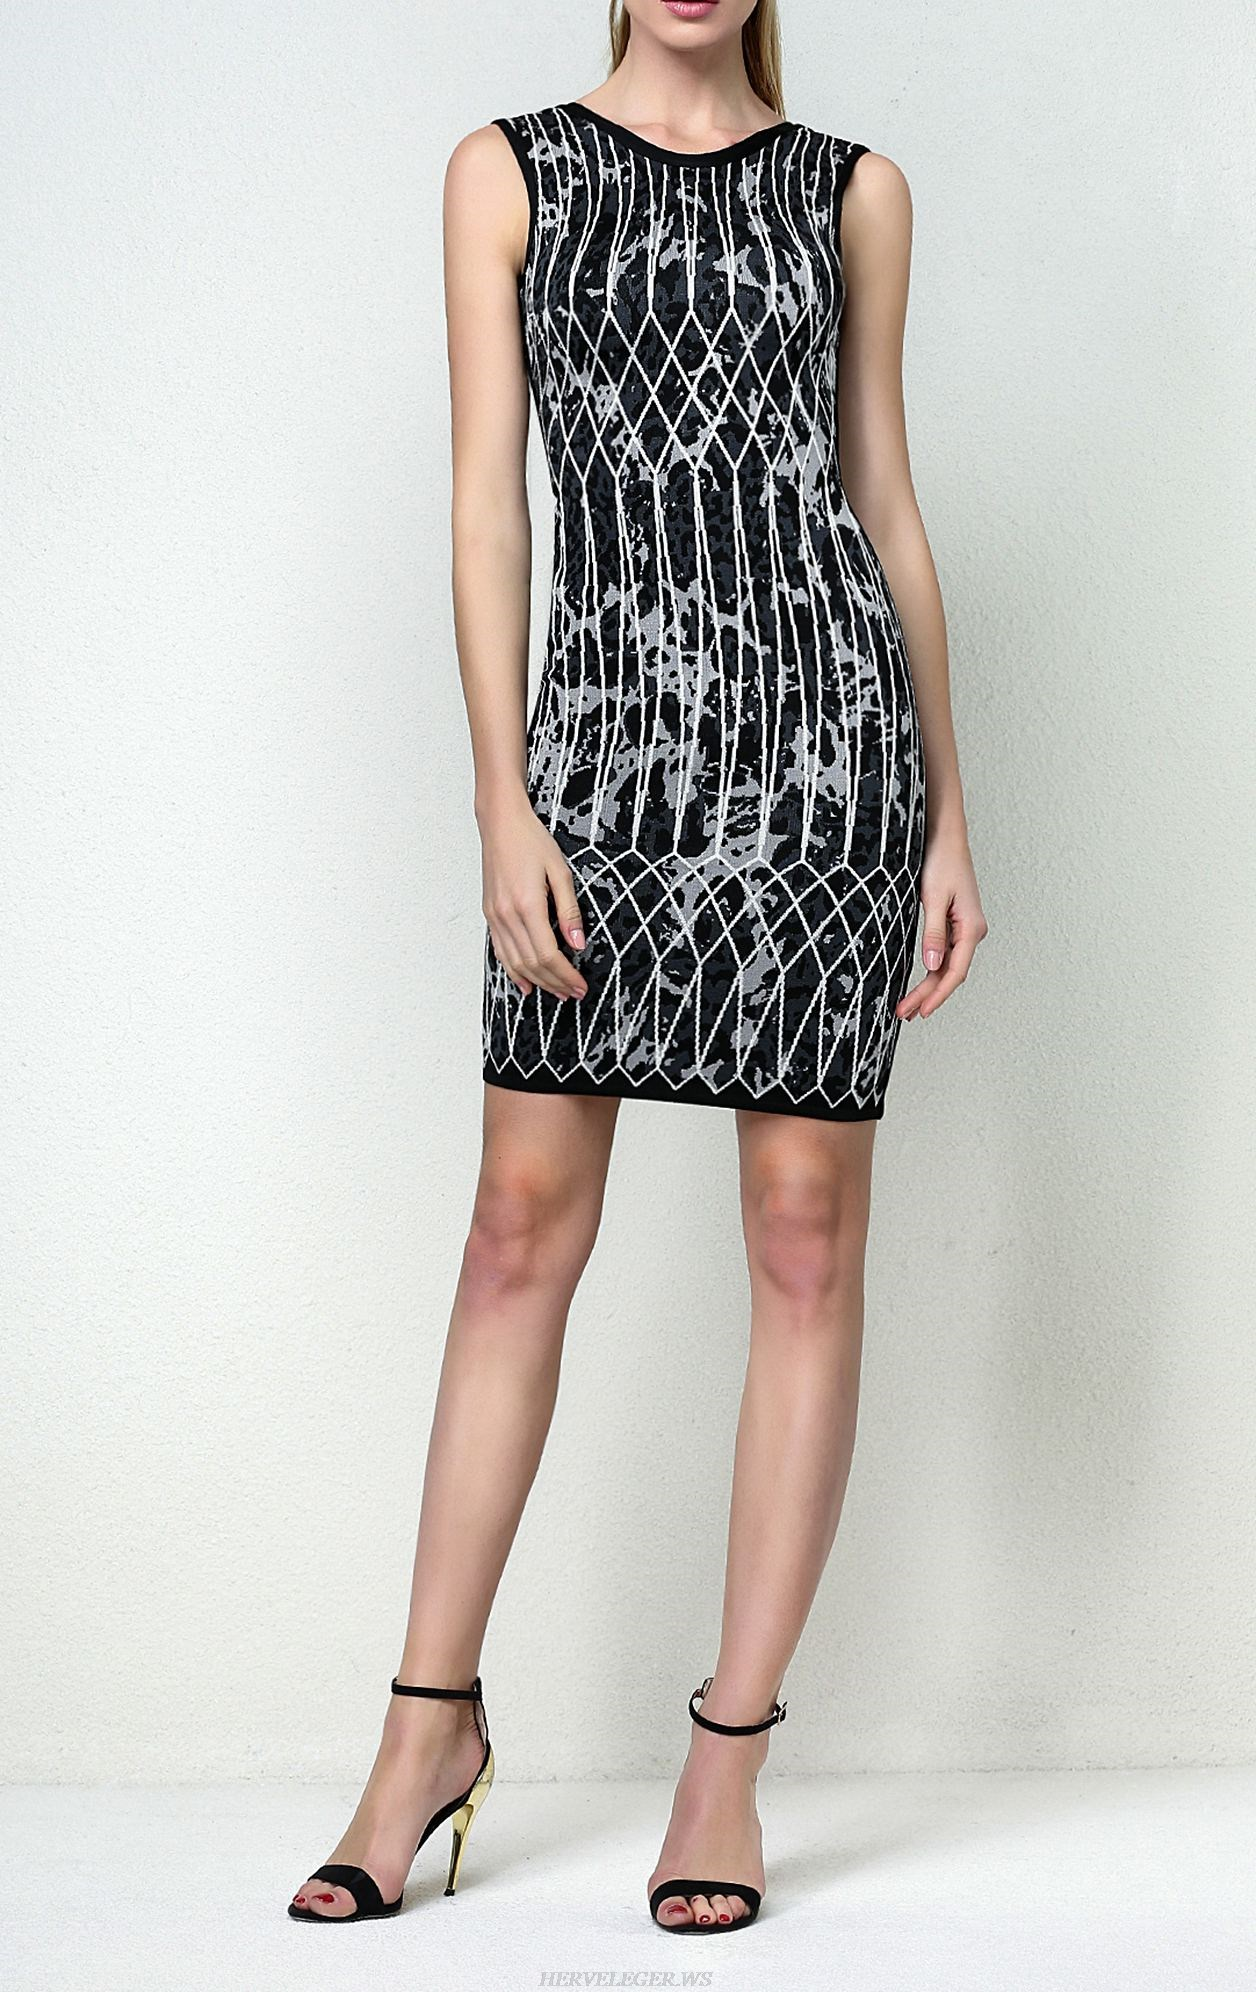 Herve Leger Sidney Open Back Caged Animal Jacquard Dress